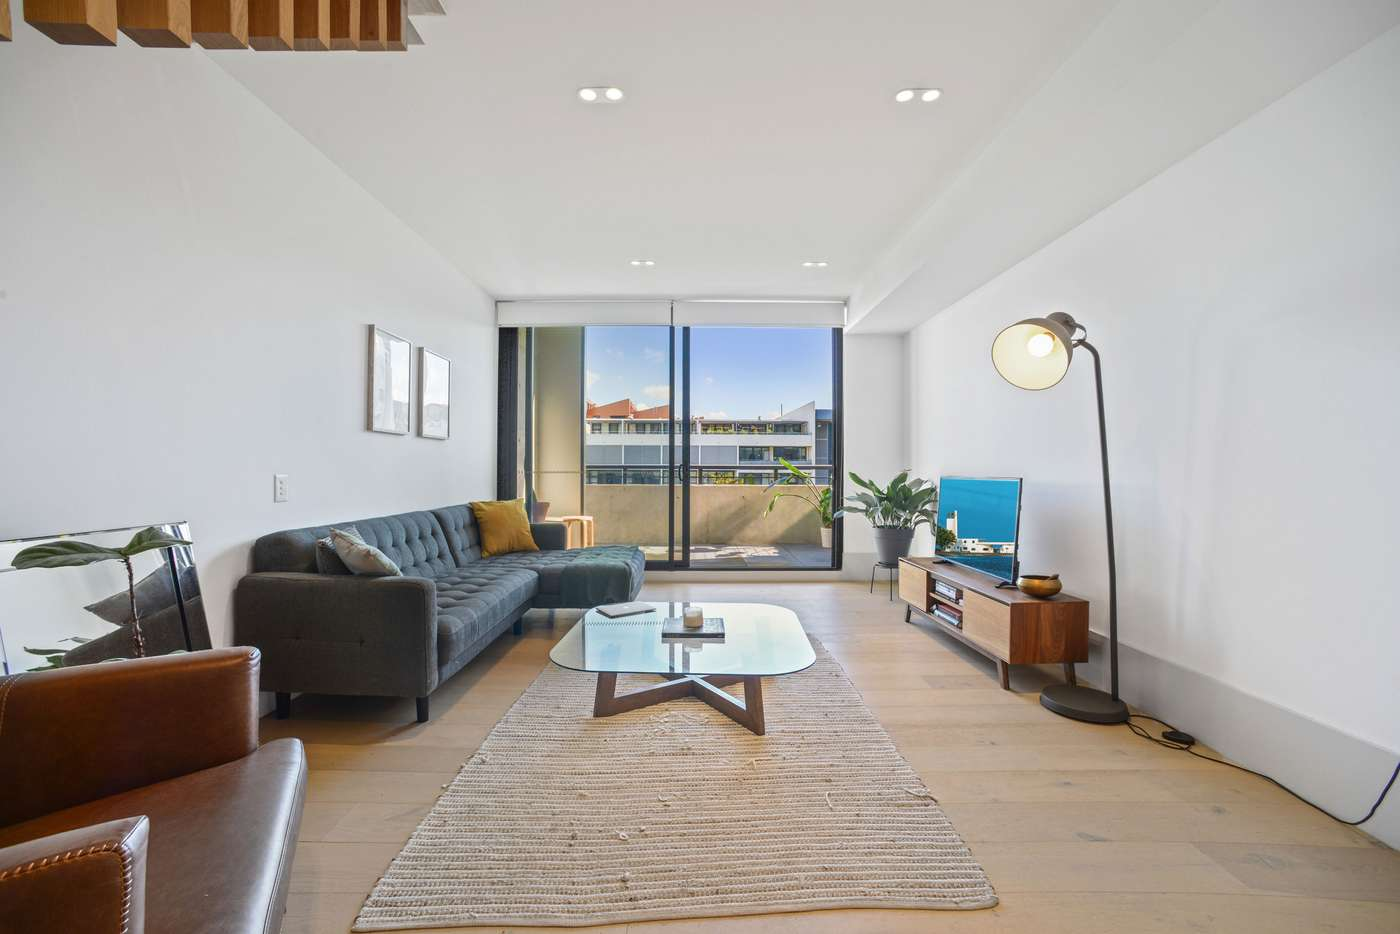 54/20 Eve Street, Erskineville, NSW 2043 For Rent - Homely